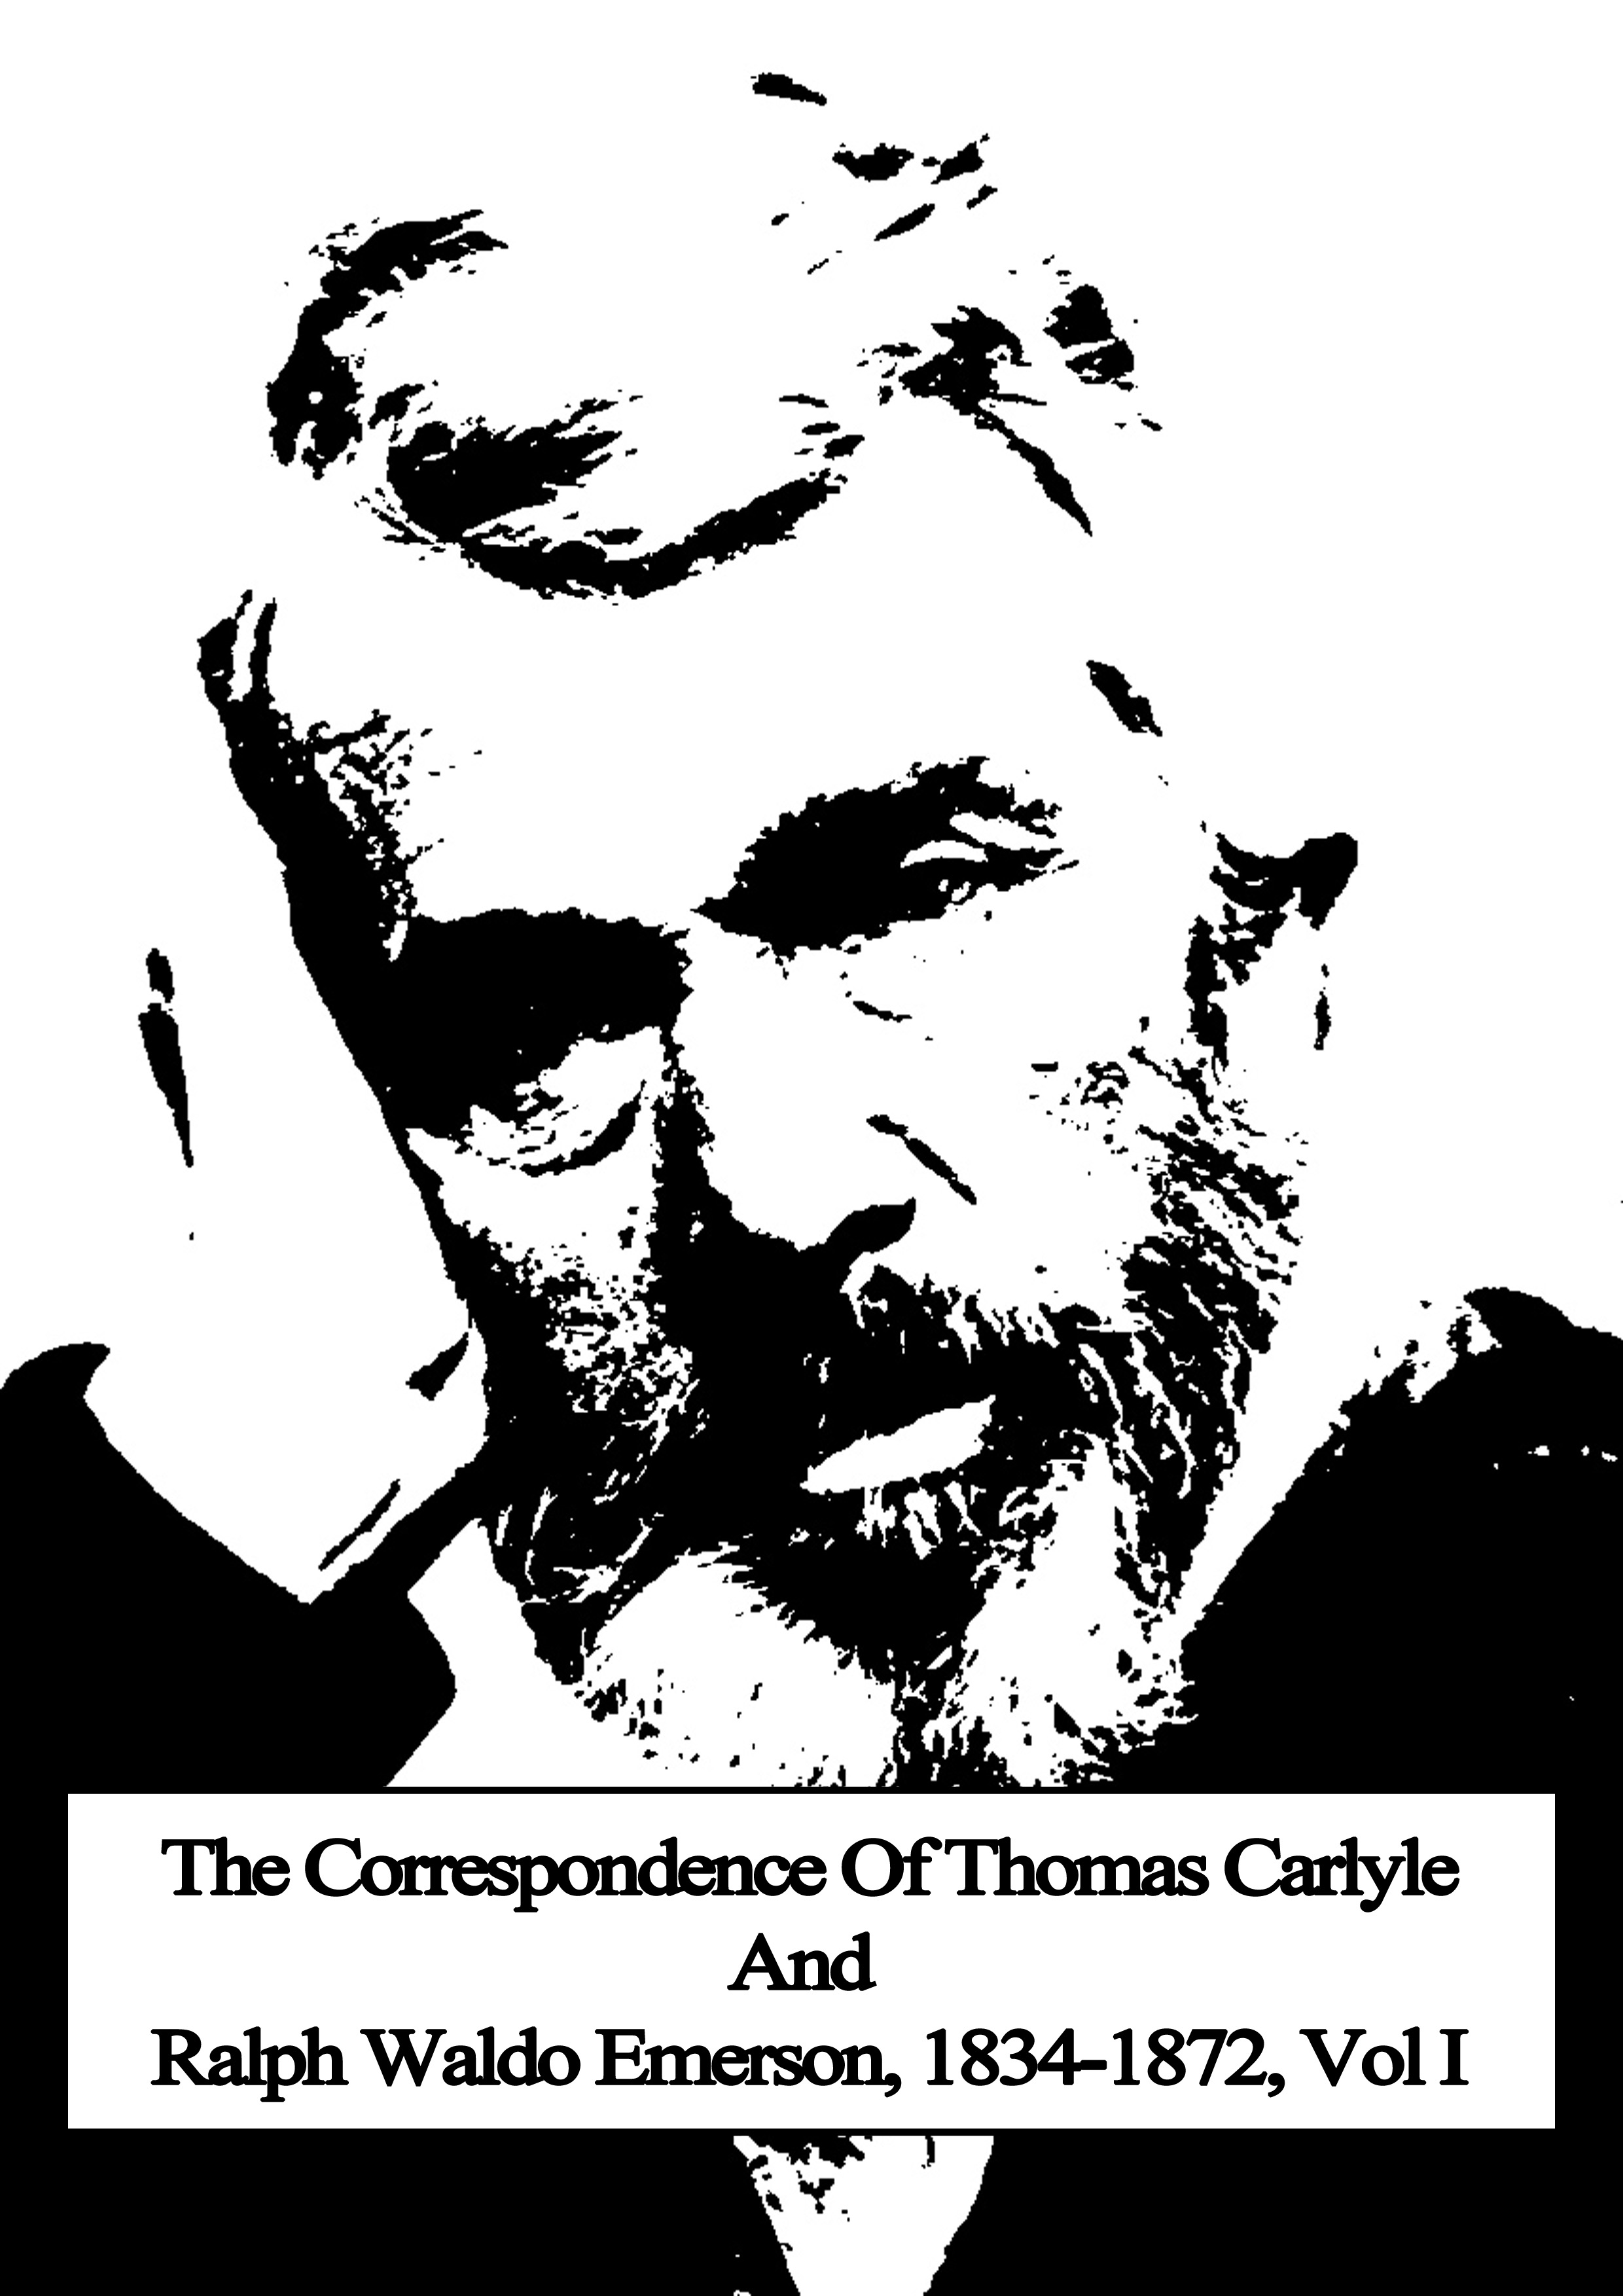 The Correspondence Of Thomas Carlyle And Ralph Waldo Emerson, 1834-1872, Vol I